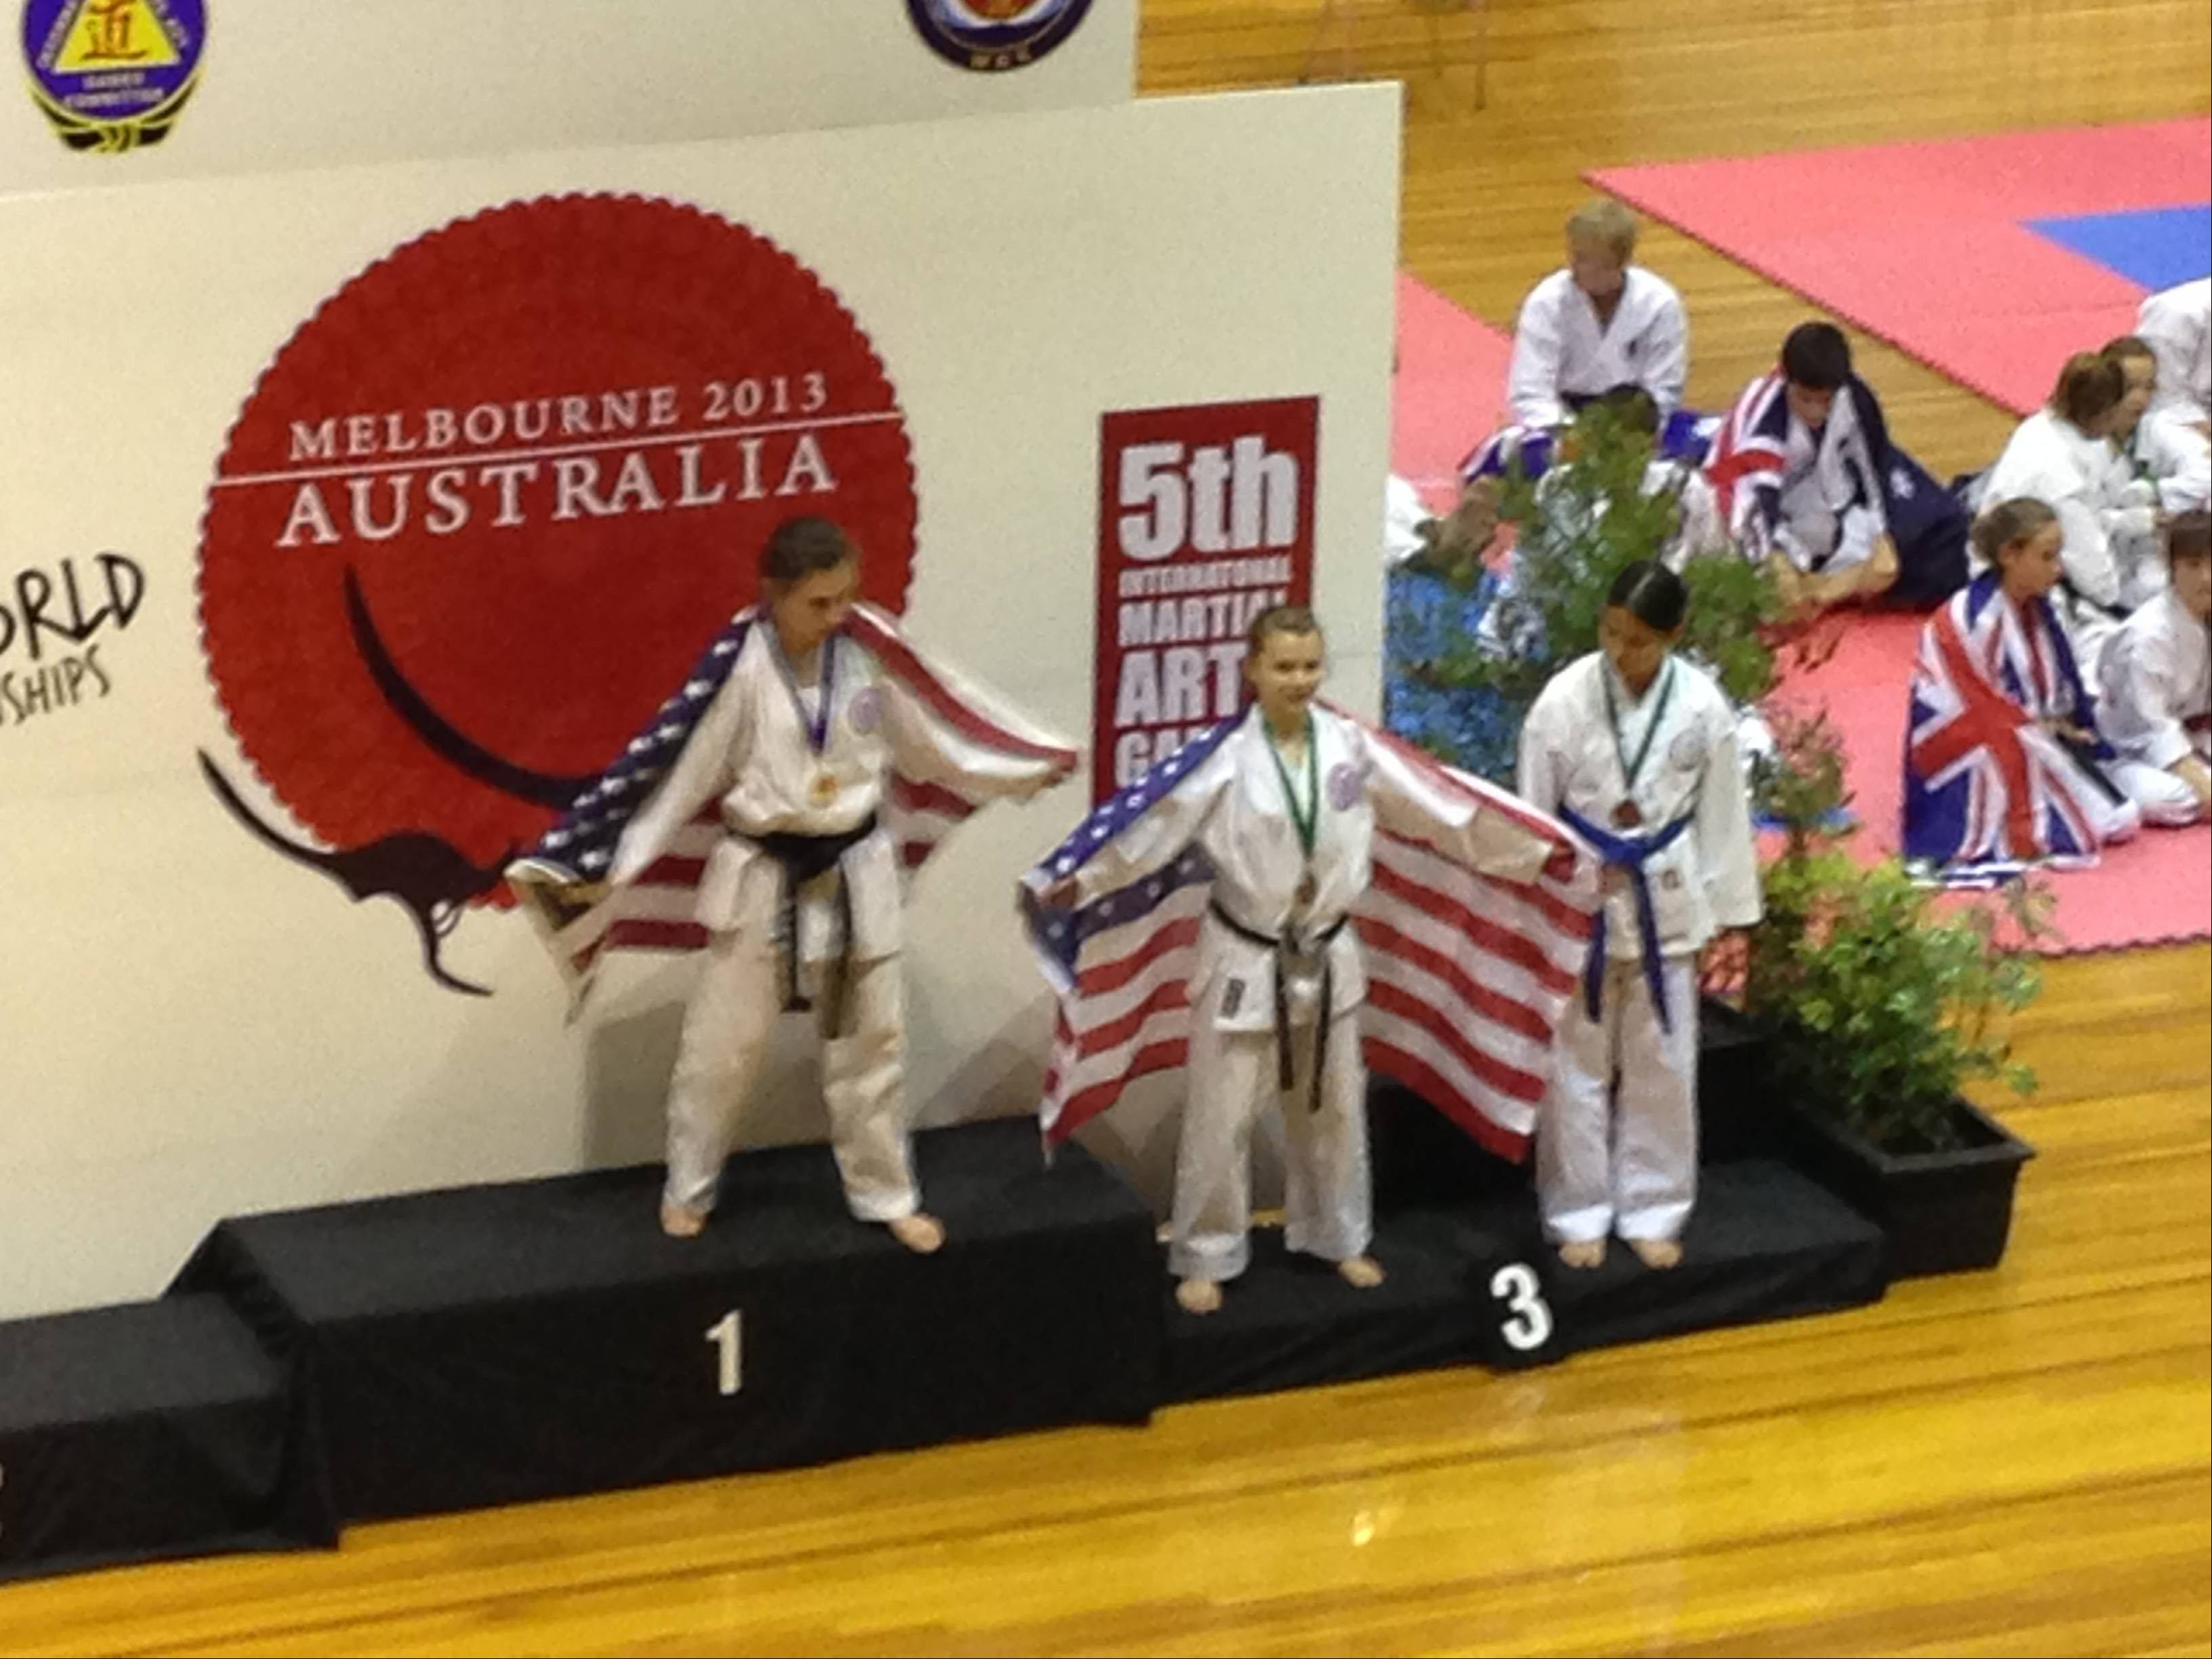 Rebecca Fishman stands on the gold-medal platform draped in the United States flag after winning the 13-year-old lightweight world championship in kumite (fighting).